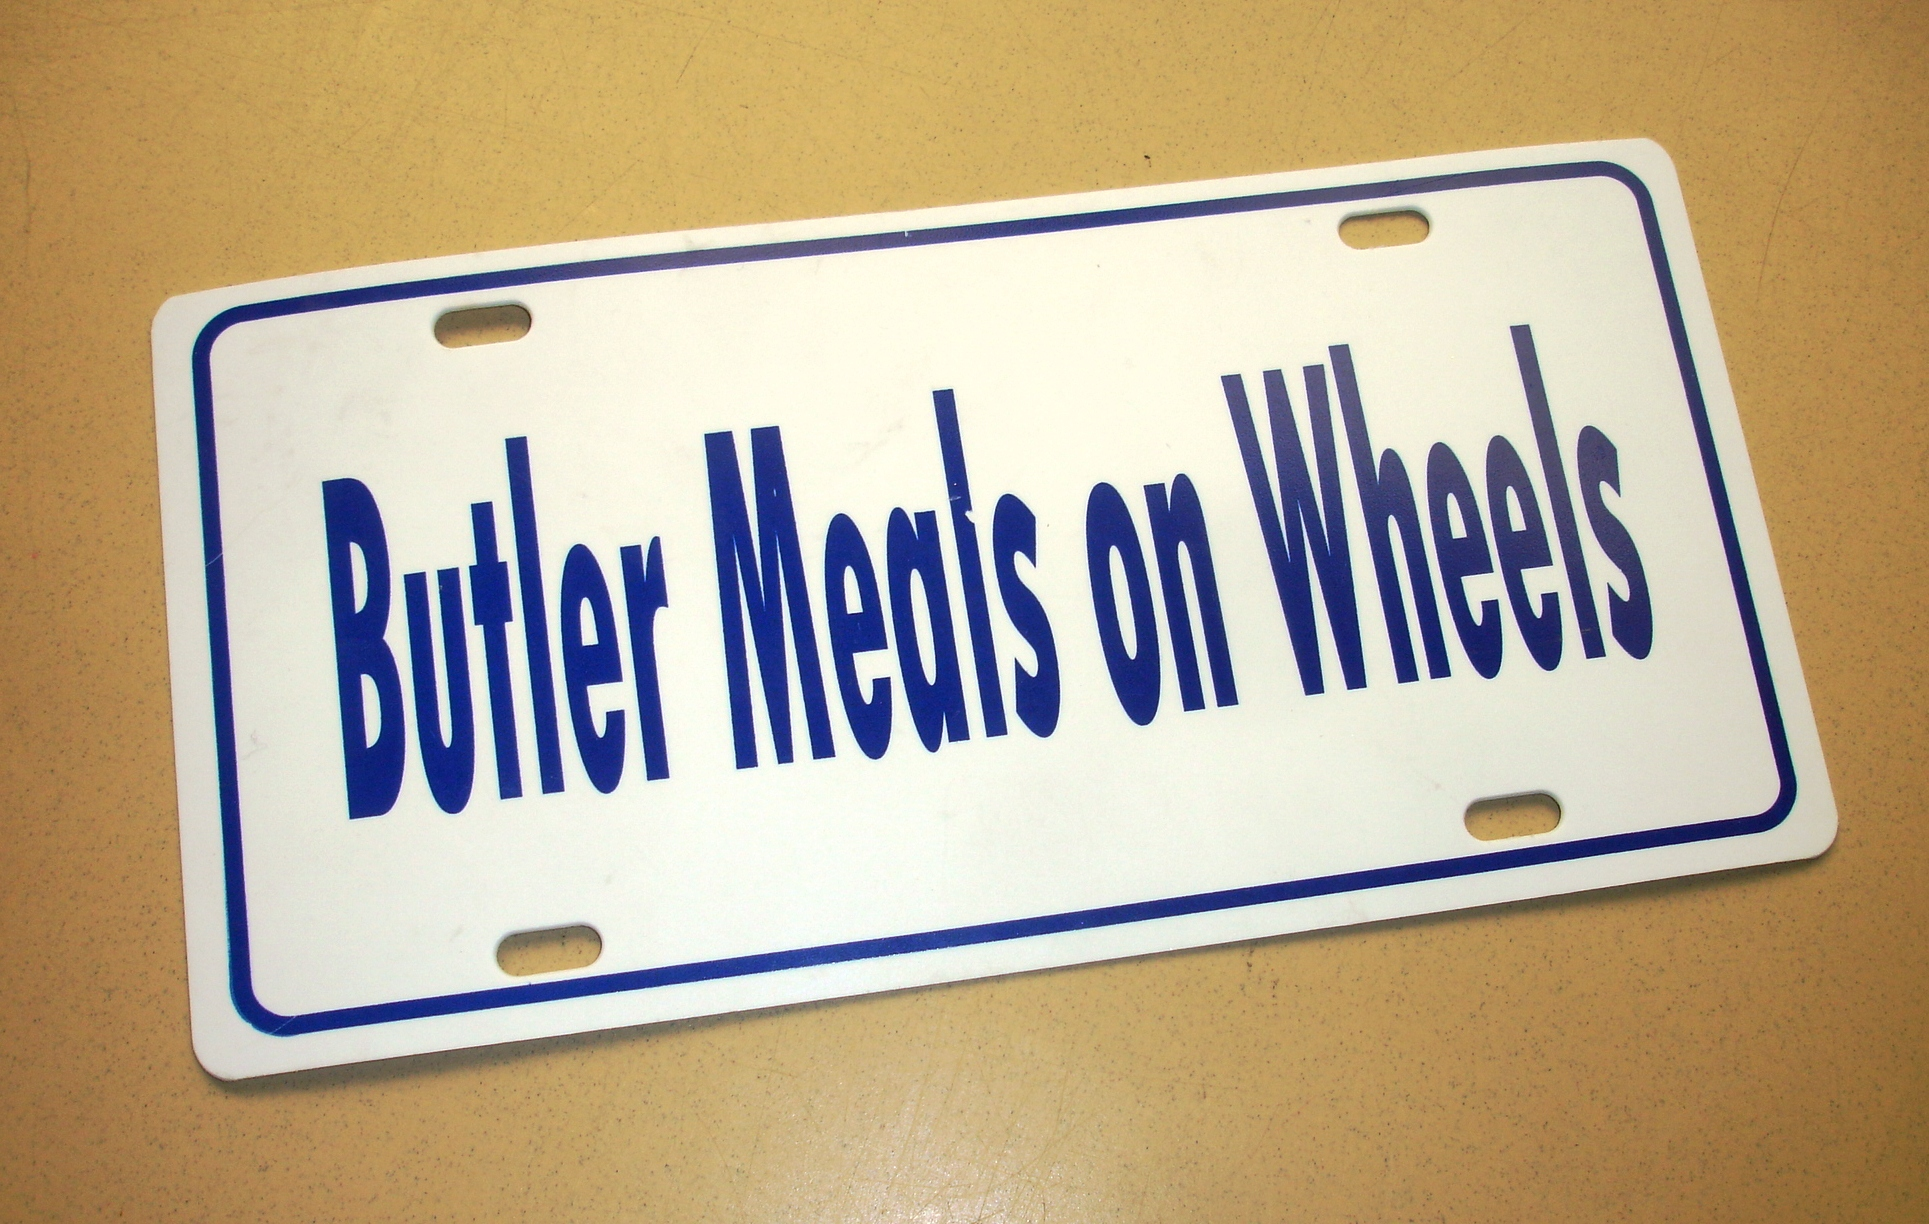 Pictures – Butler Meals on Wheels